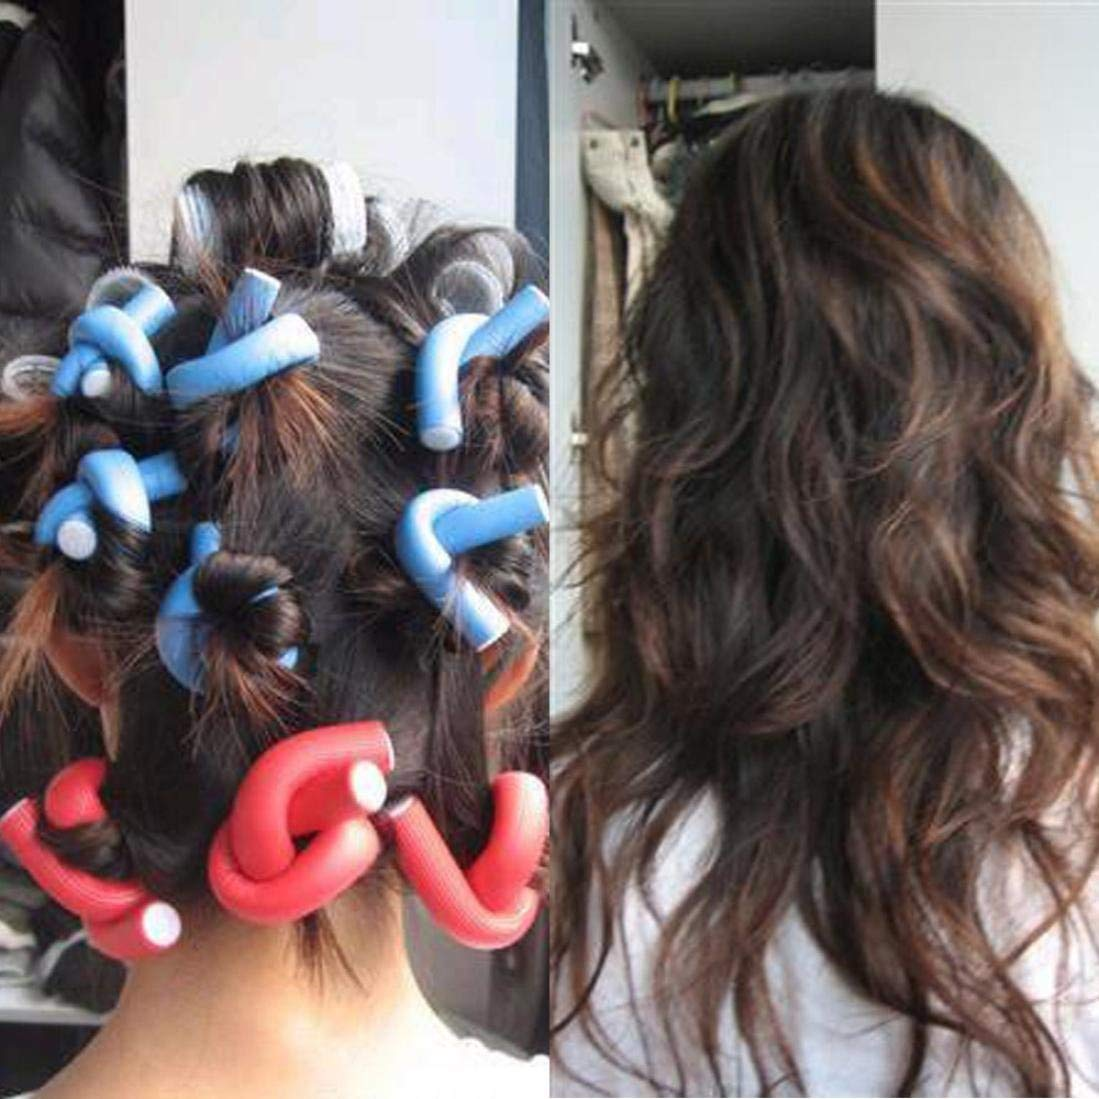 Cheap Electric Rollers For Short Hair Find Electric Rollers For Short Hair Deals On Line At Alibaba Com